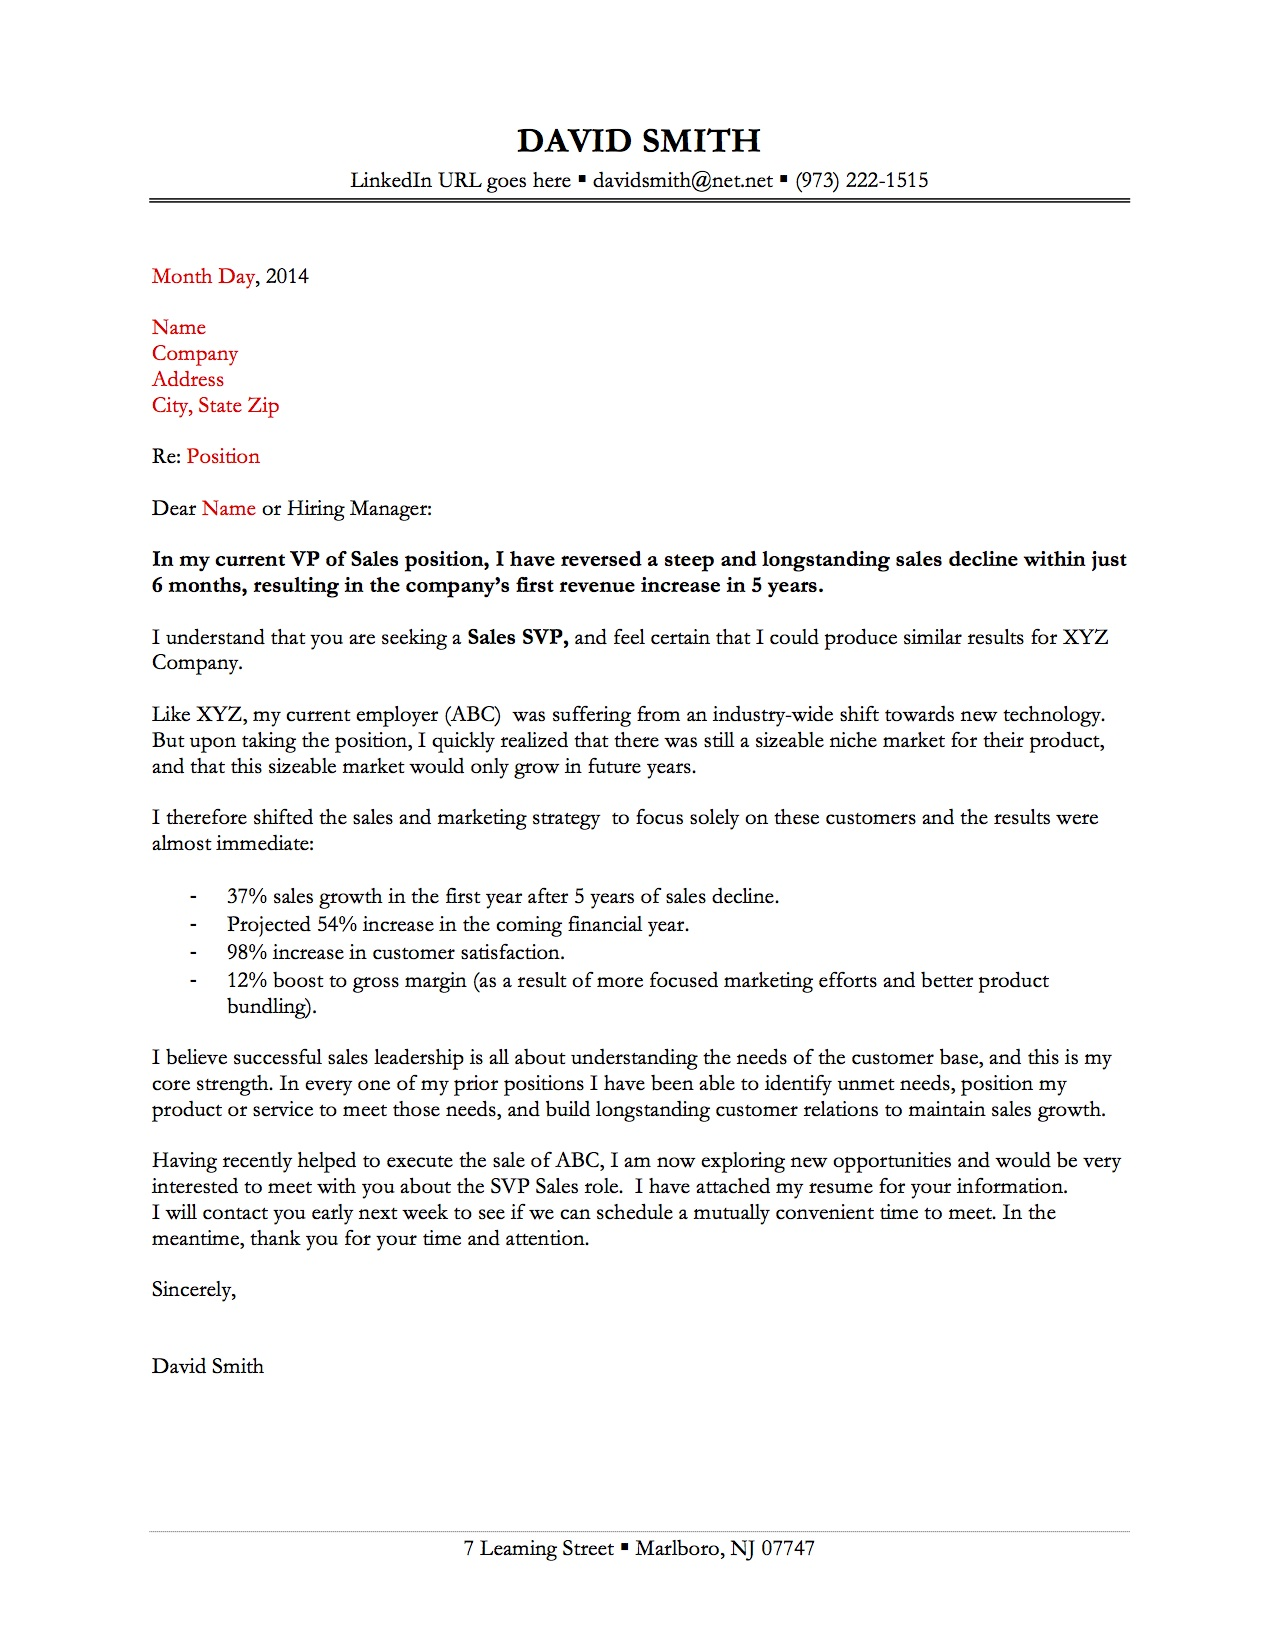 Two Great Cover Letter Examples | Blue Sky Resumes Blog